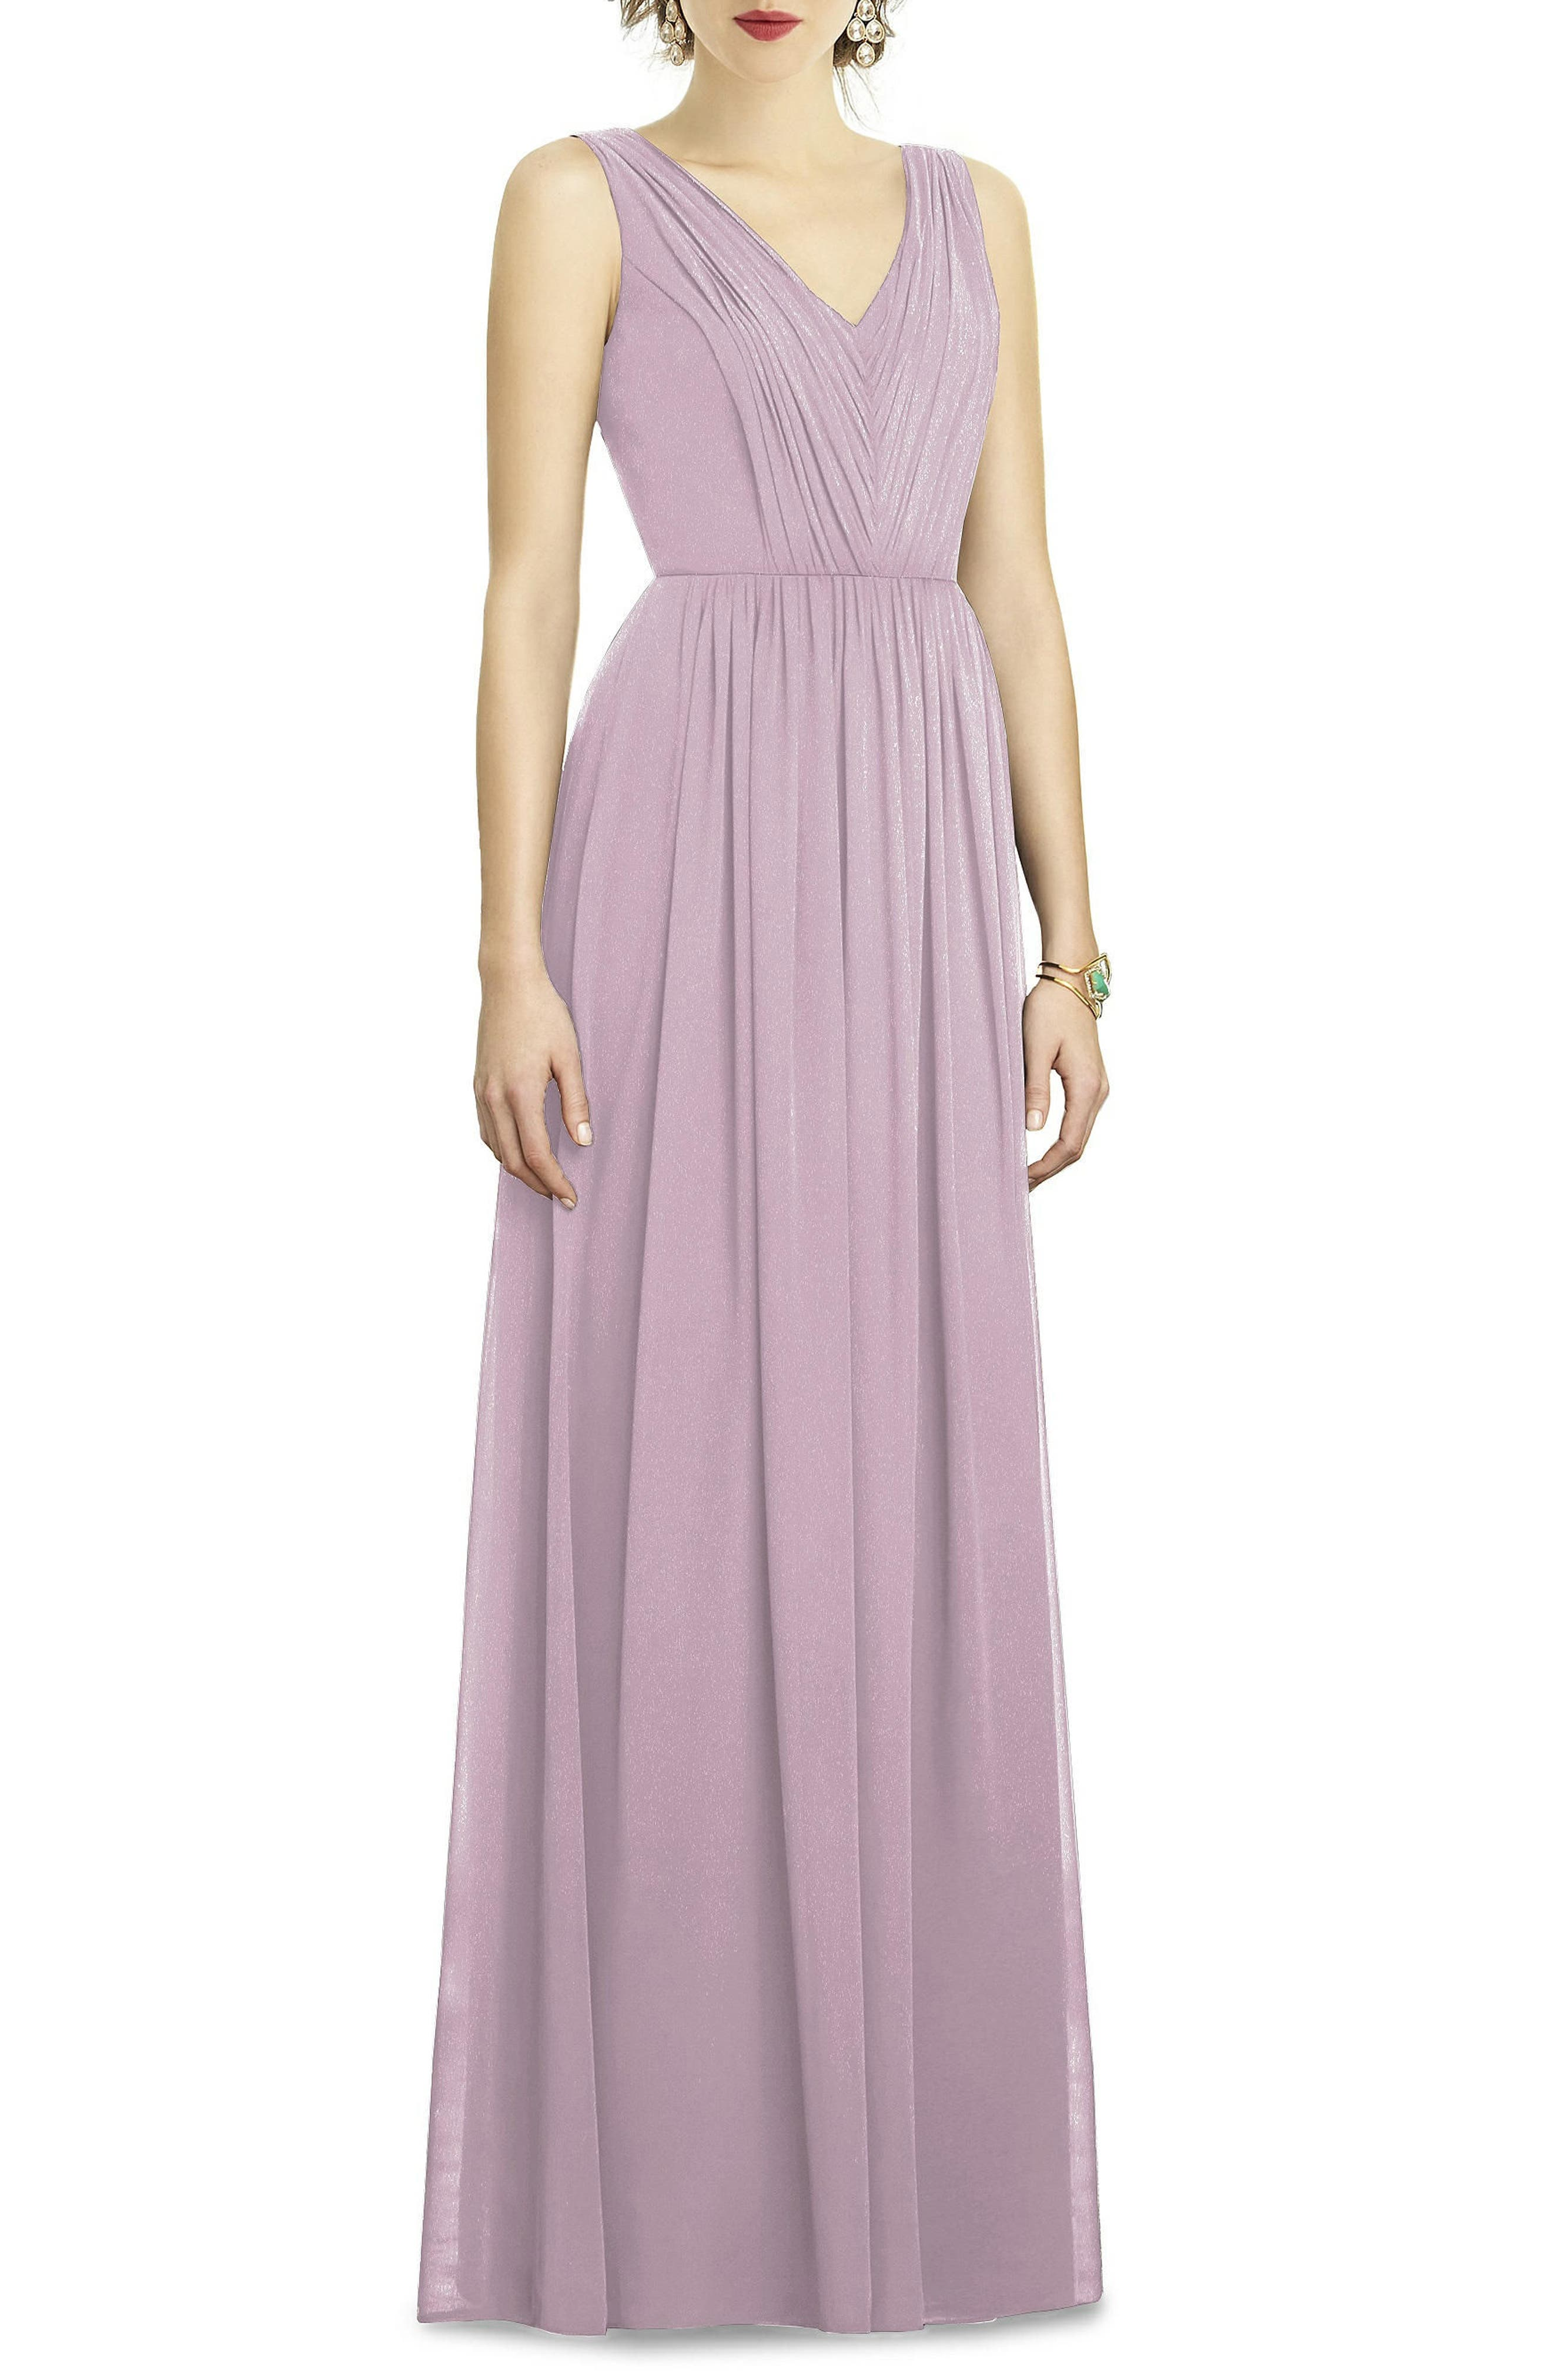 Shirred Shimmer Chiffon Gown,                         Main,                         color, Suede Rose Silver